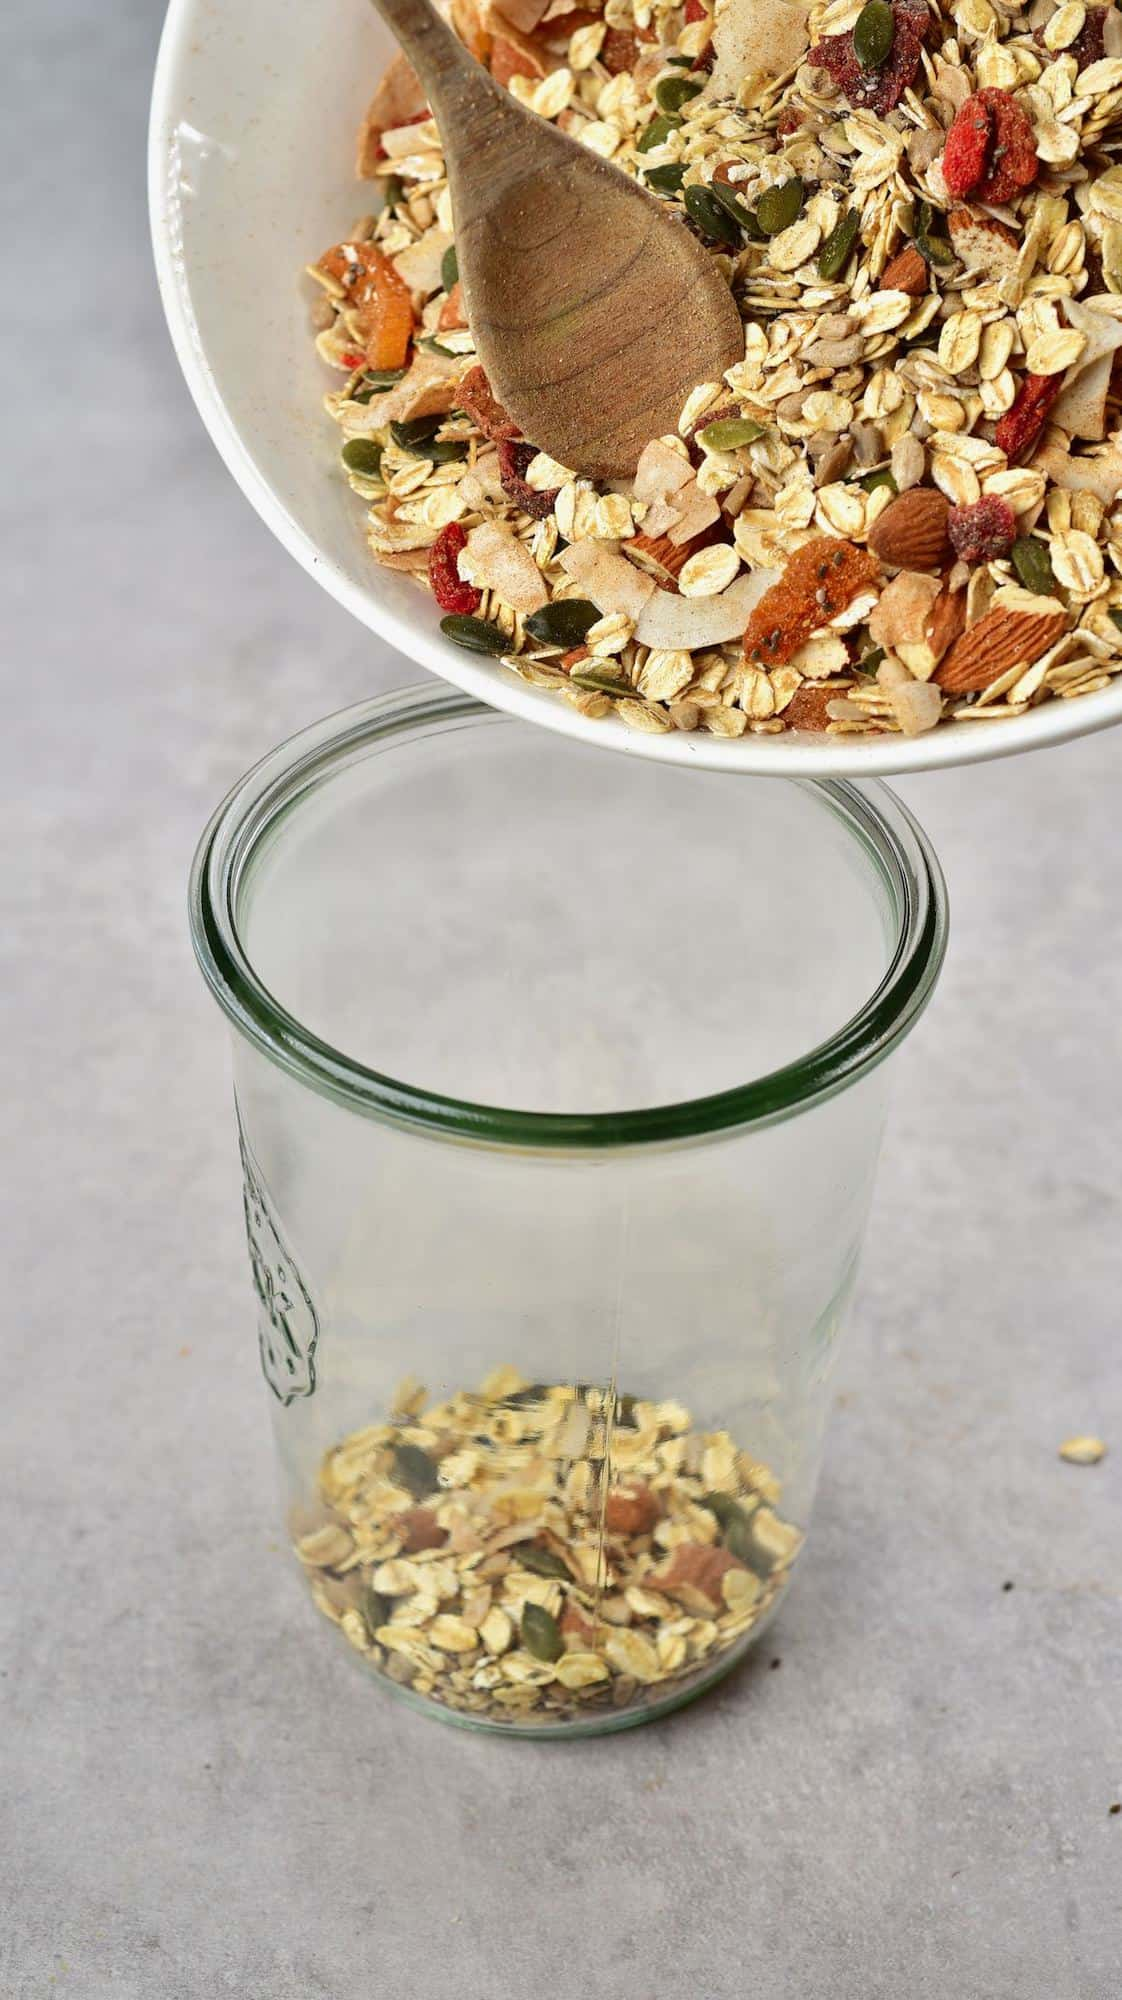 Filling up a jar with homemade muesli